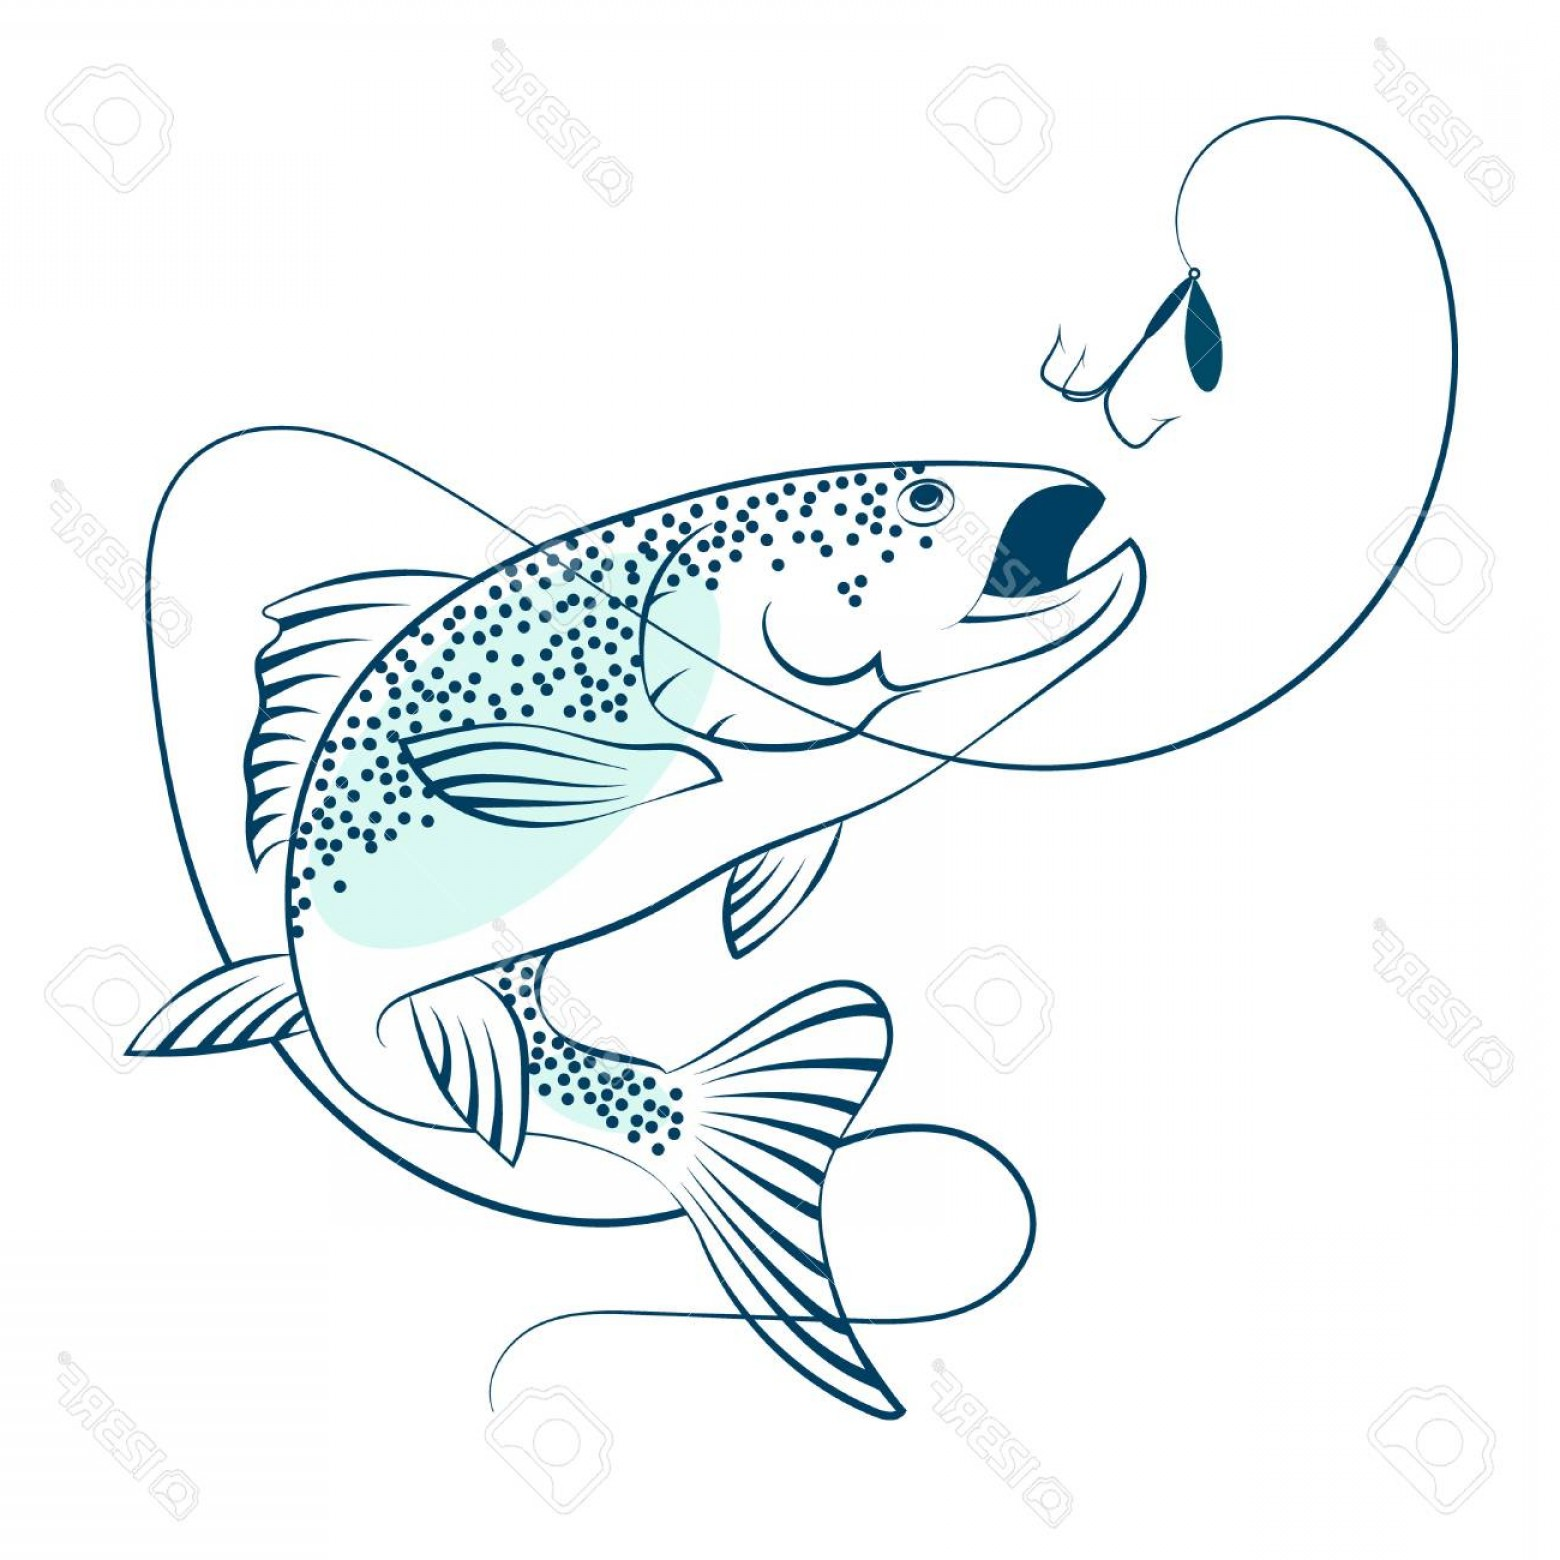 Jumping salmon clipart picture transparent library Salmon Jumping For Bait For Fishing Silhouette | SOIDERGI picture transparent library